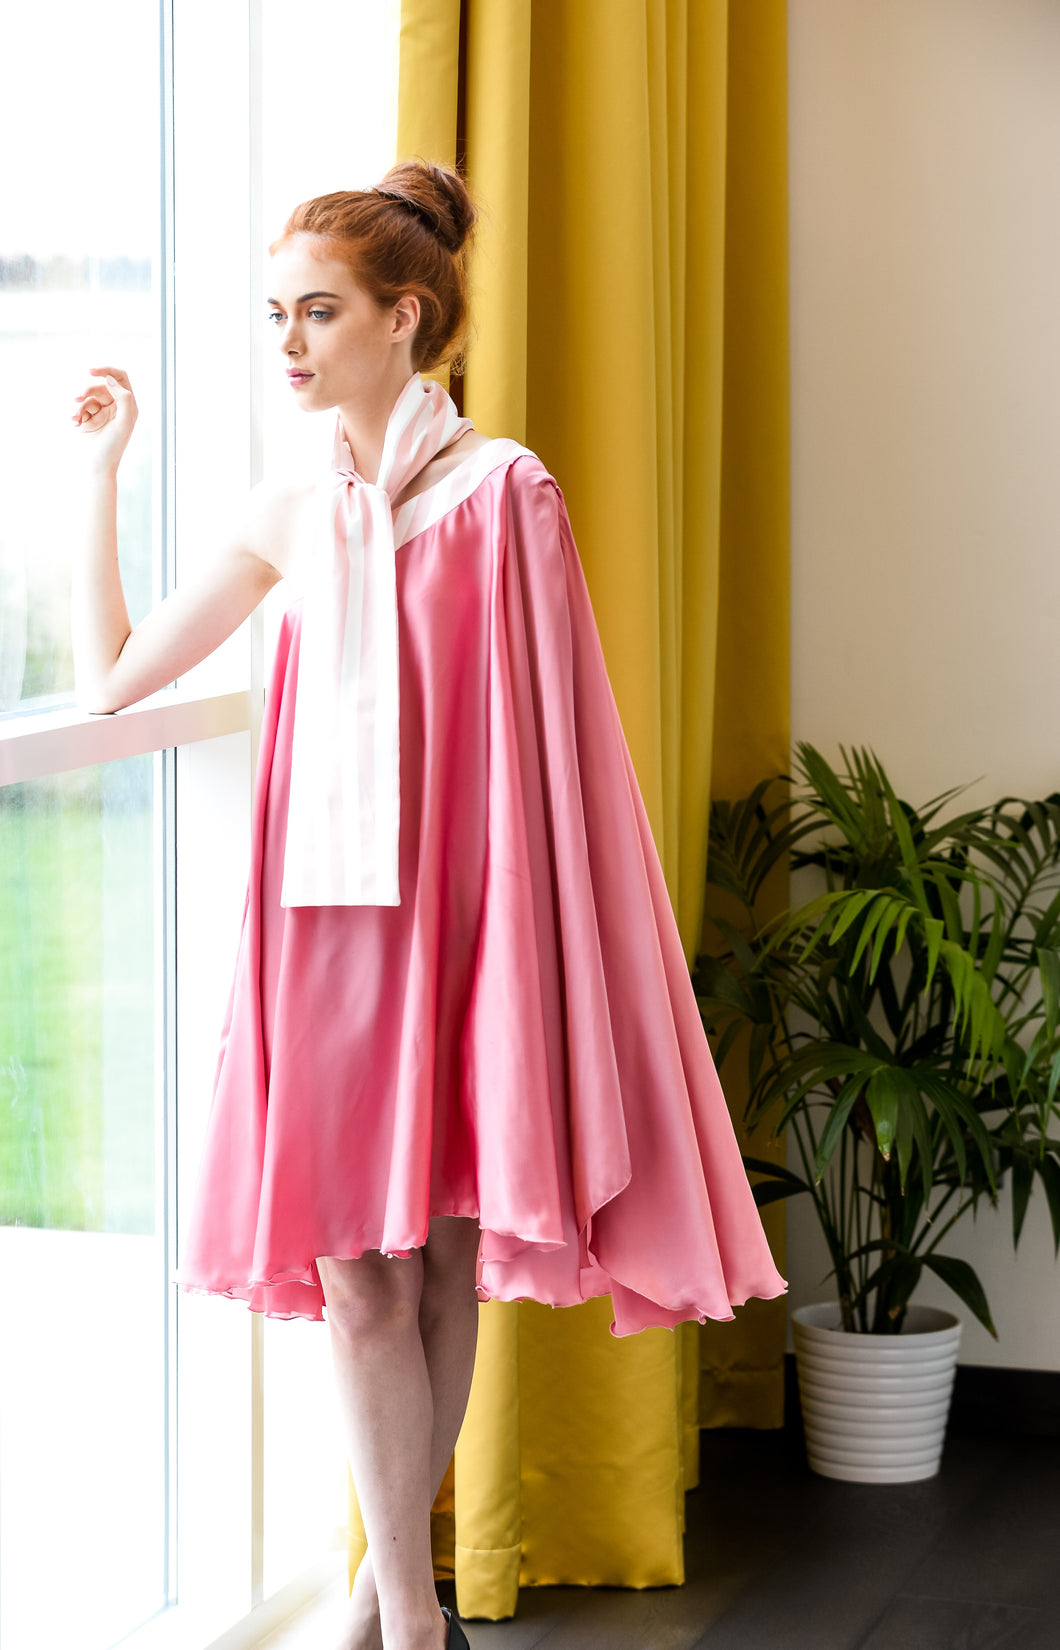 ARSHYS PINK VOLUME DRESS